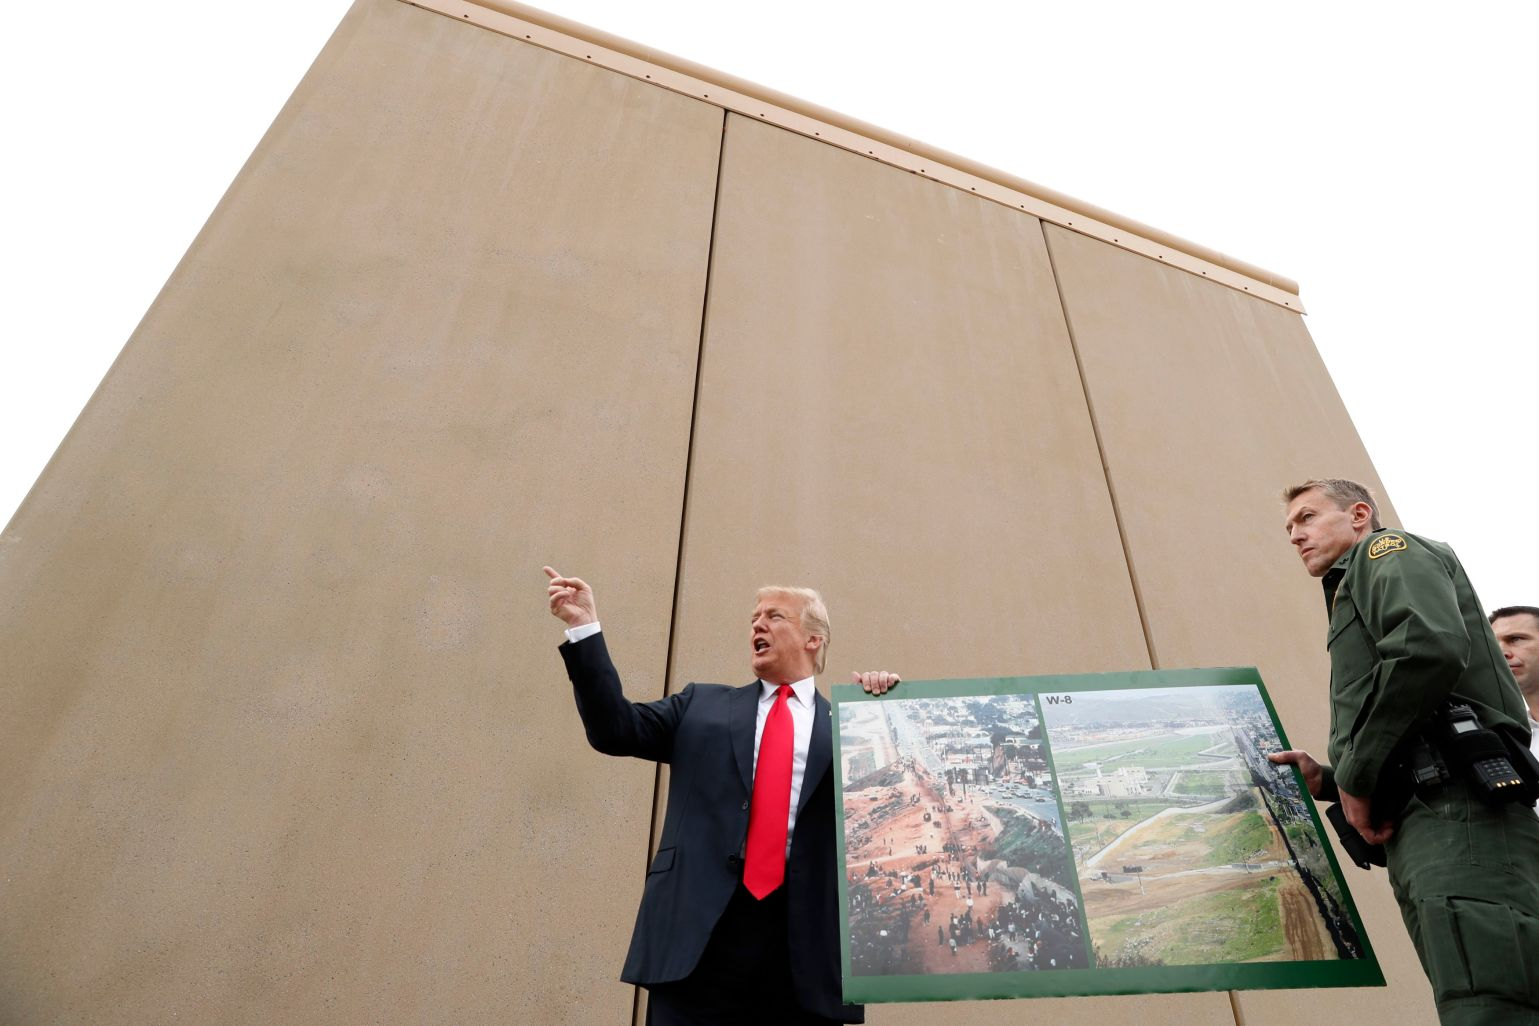 Trump warns of 'bedlam' without border wall